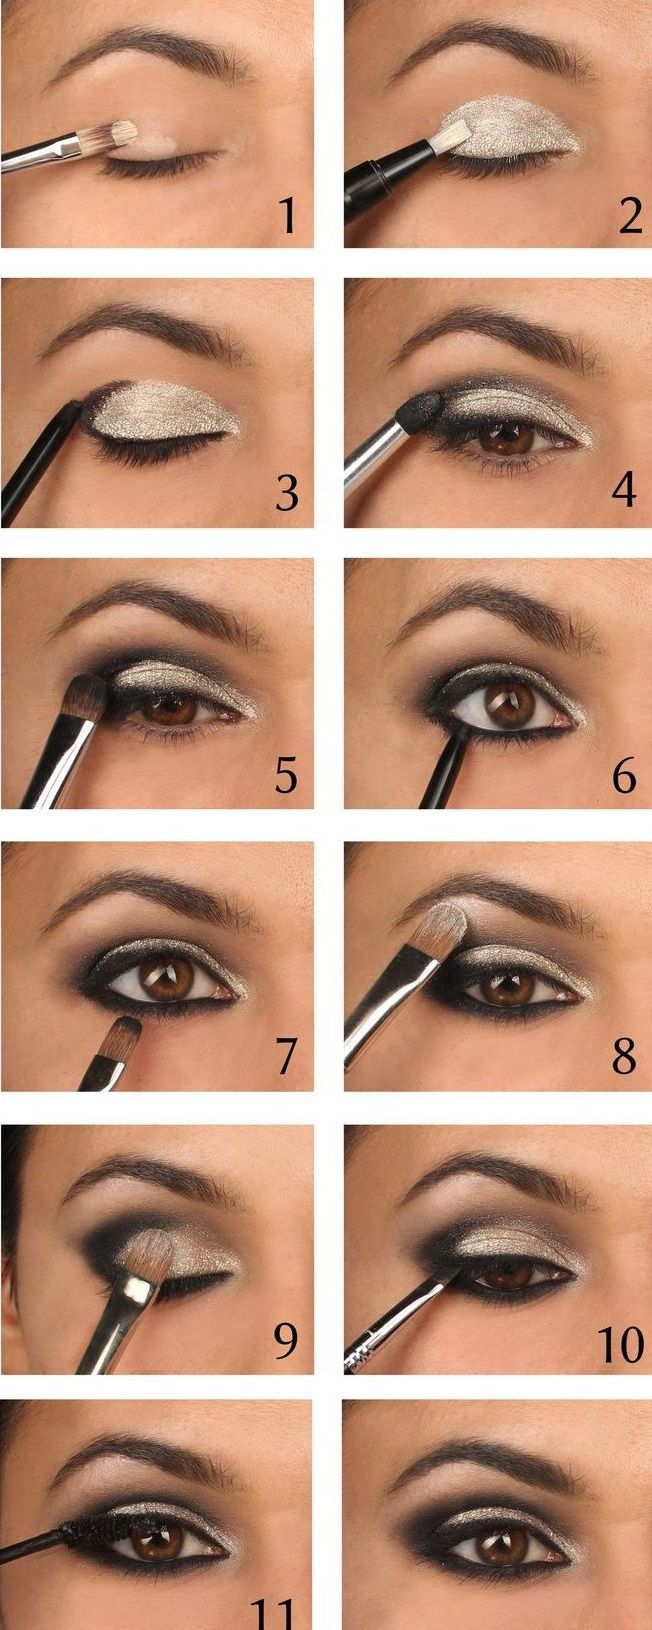 22 Easy Step By Step Makeup Tutorials For Teens  Makeup Ideas 2017